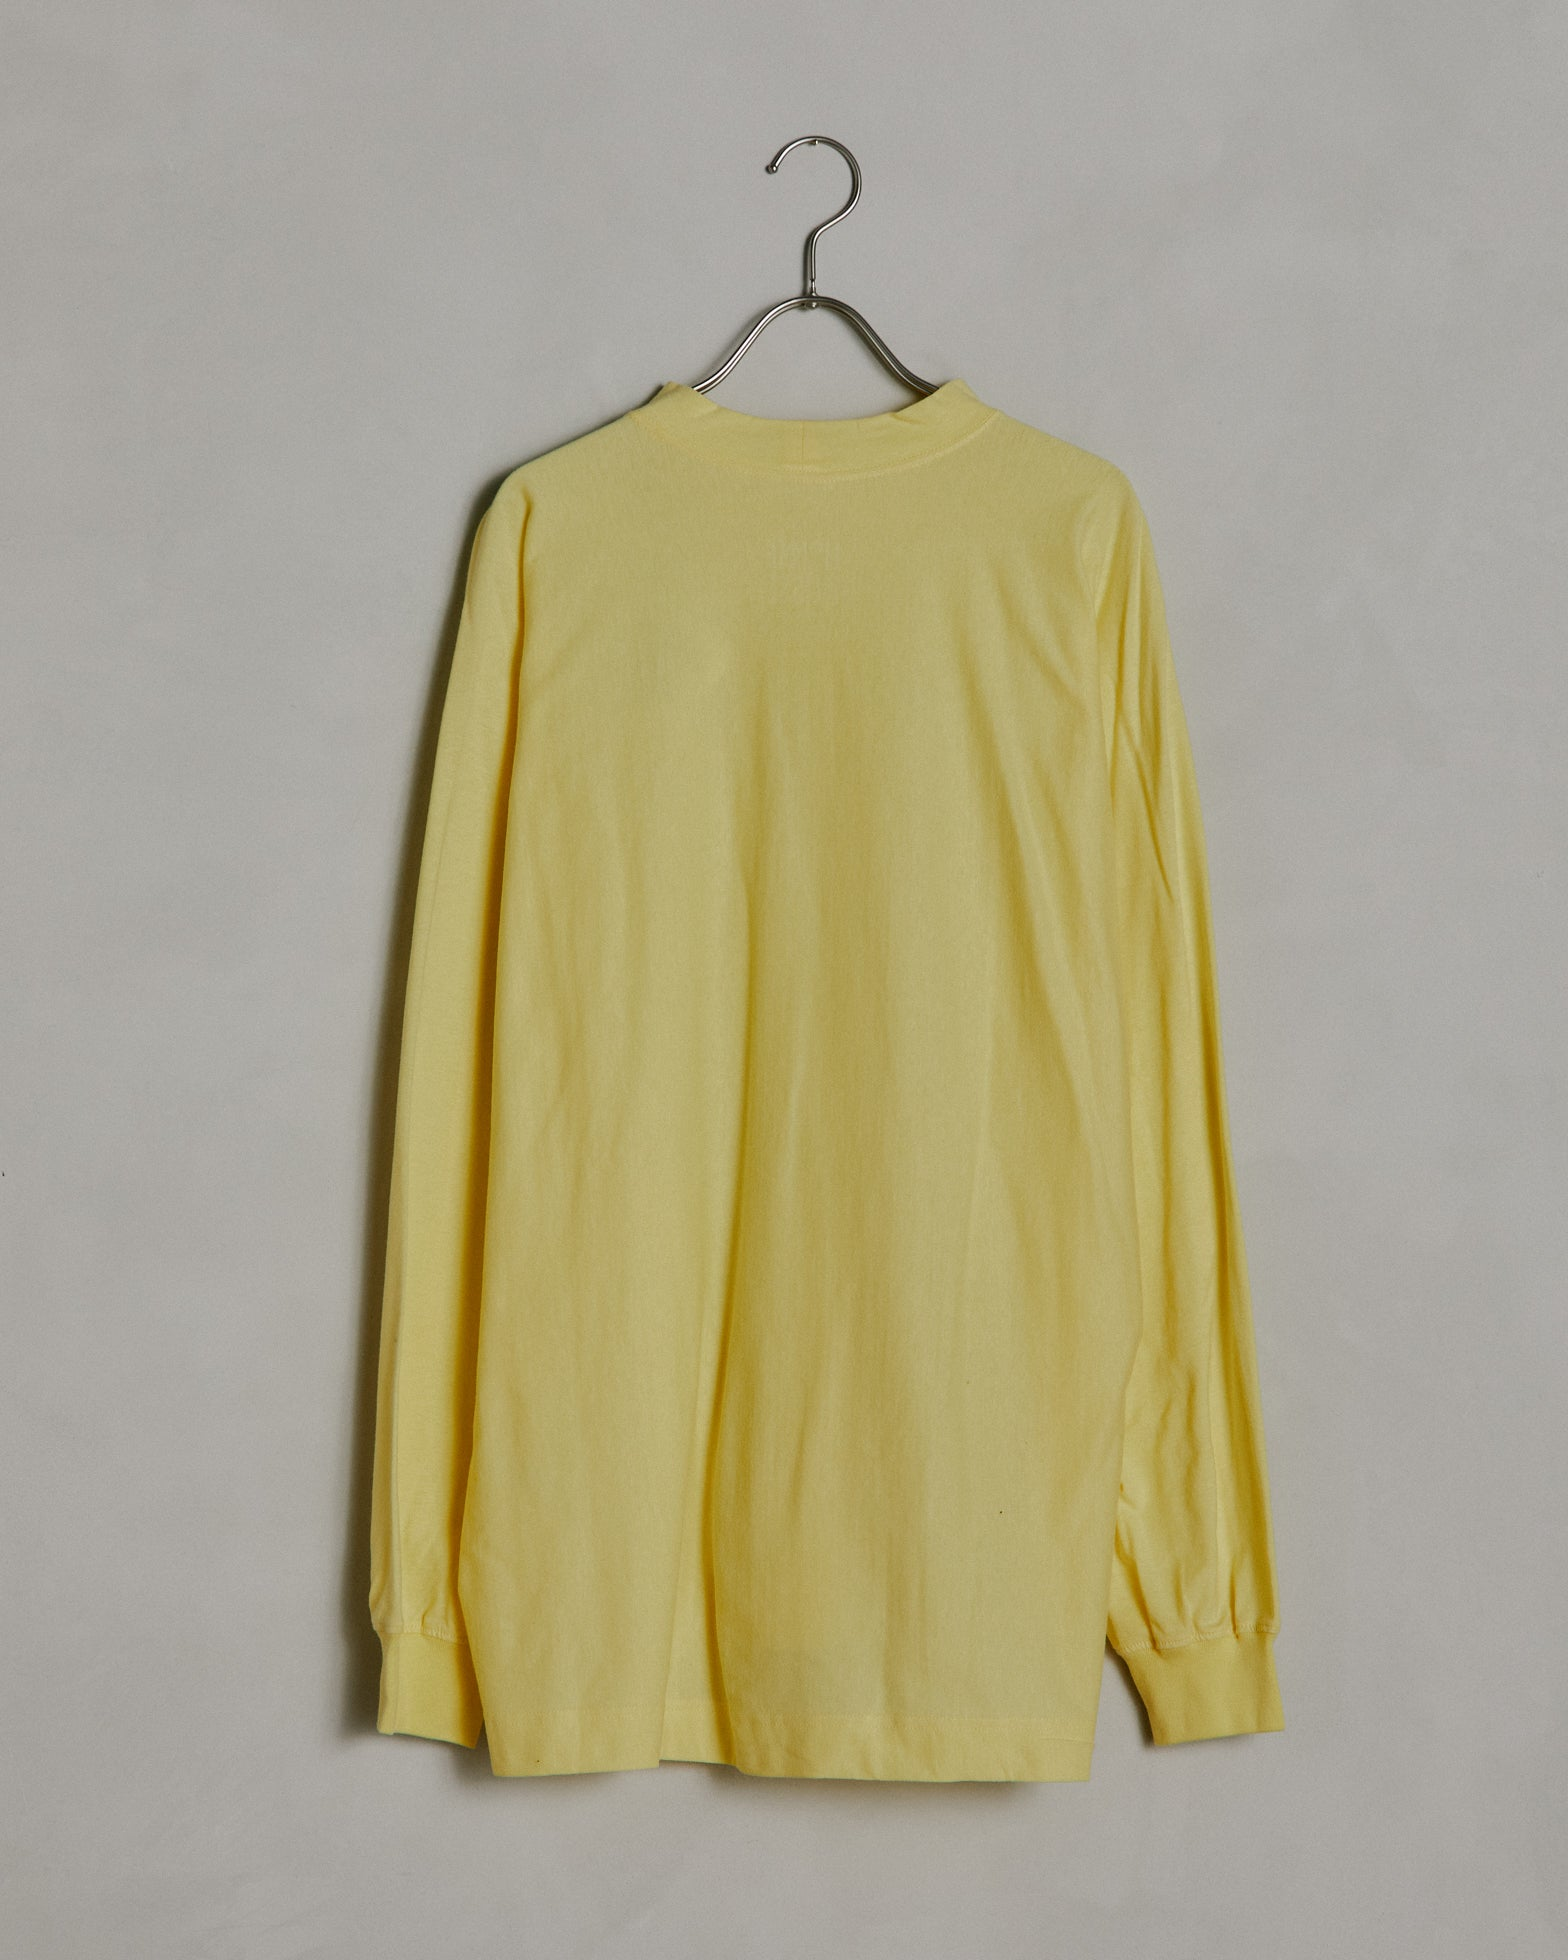 Release-T2 T-shirt in Yellow